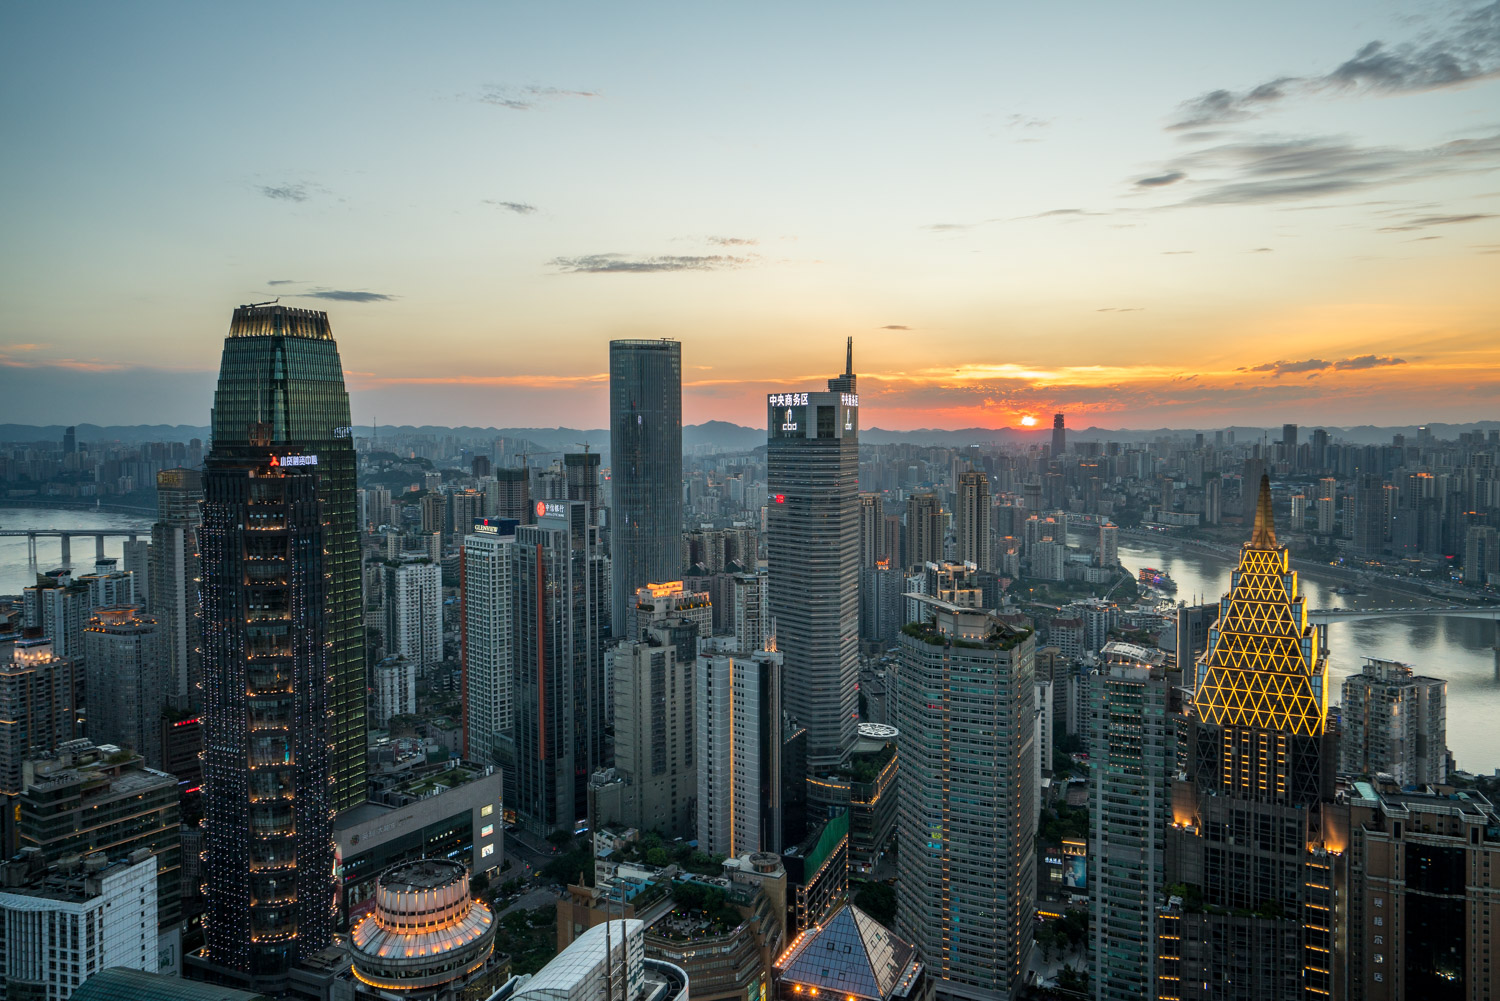 Downtown of Yuzhong district in the center of Chongqing China at Sunset